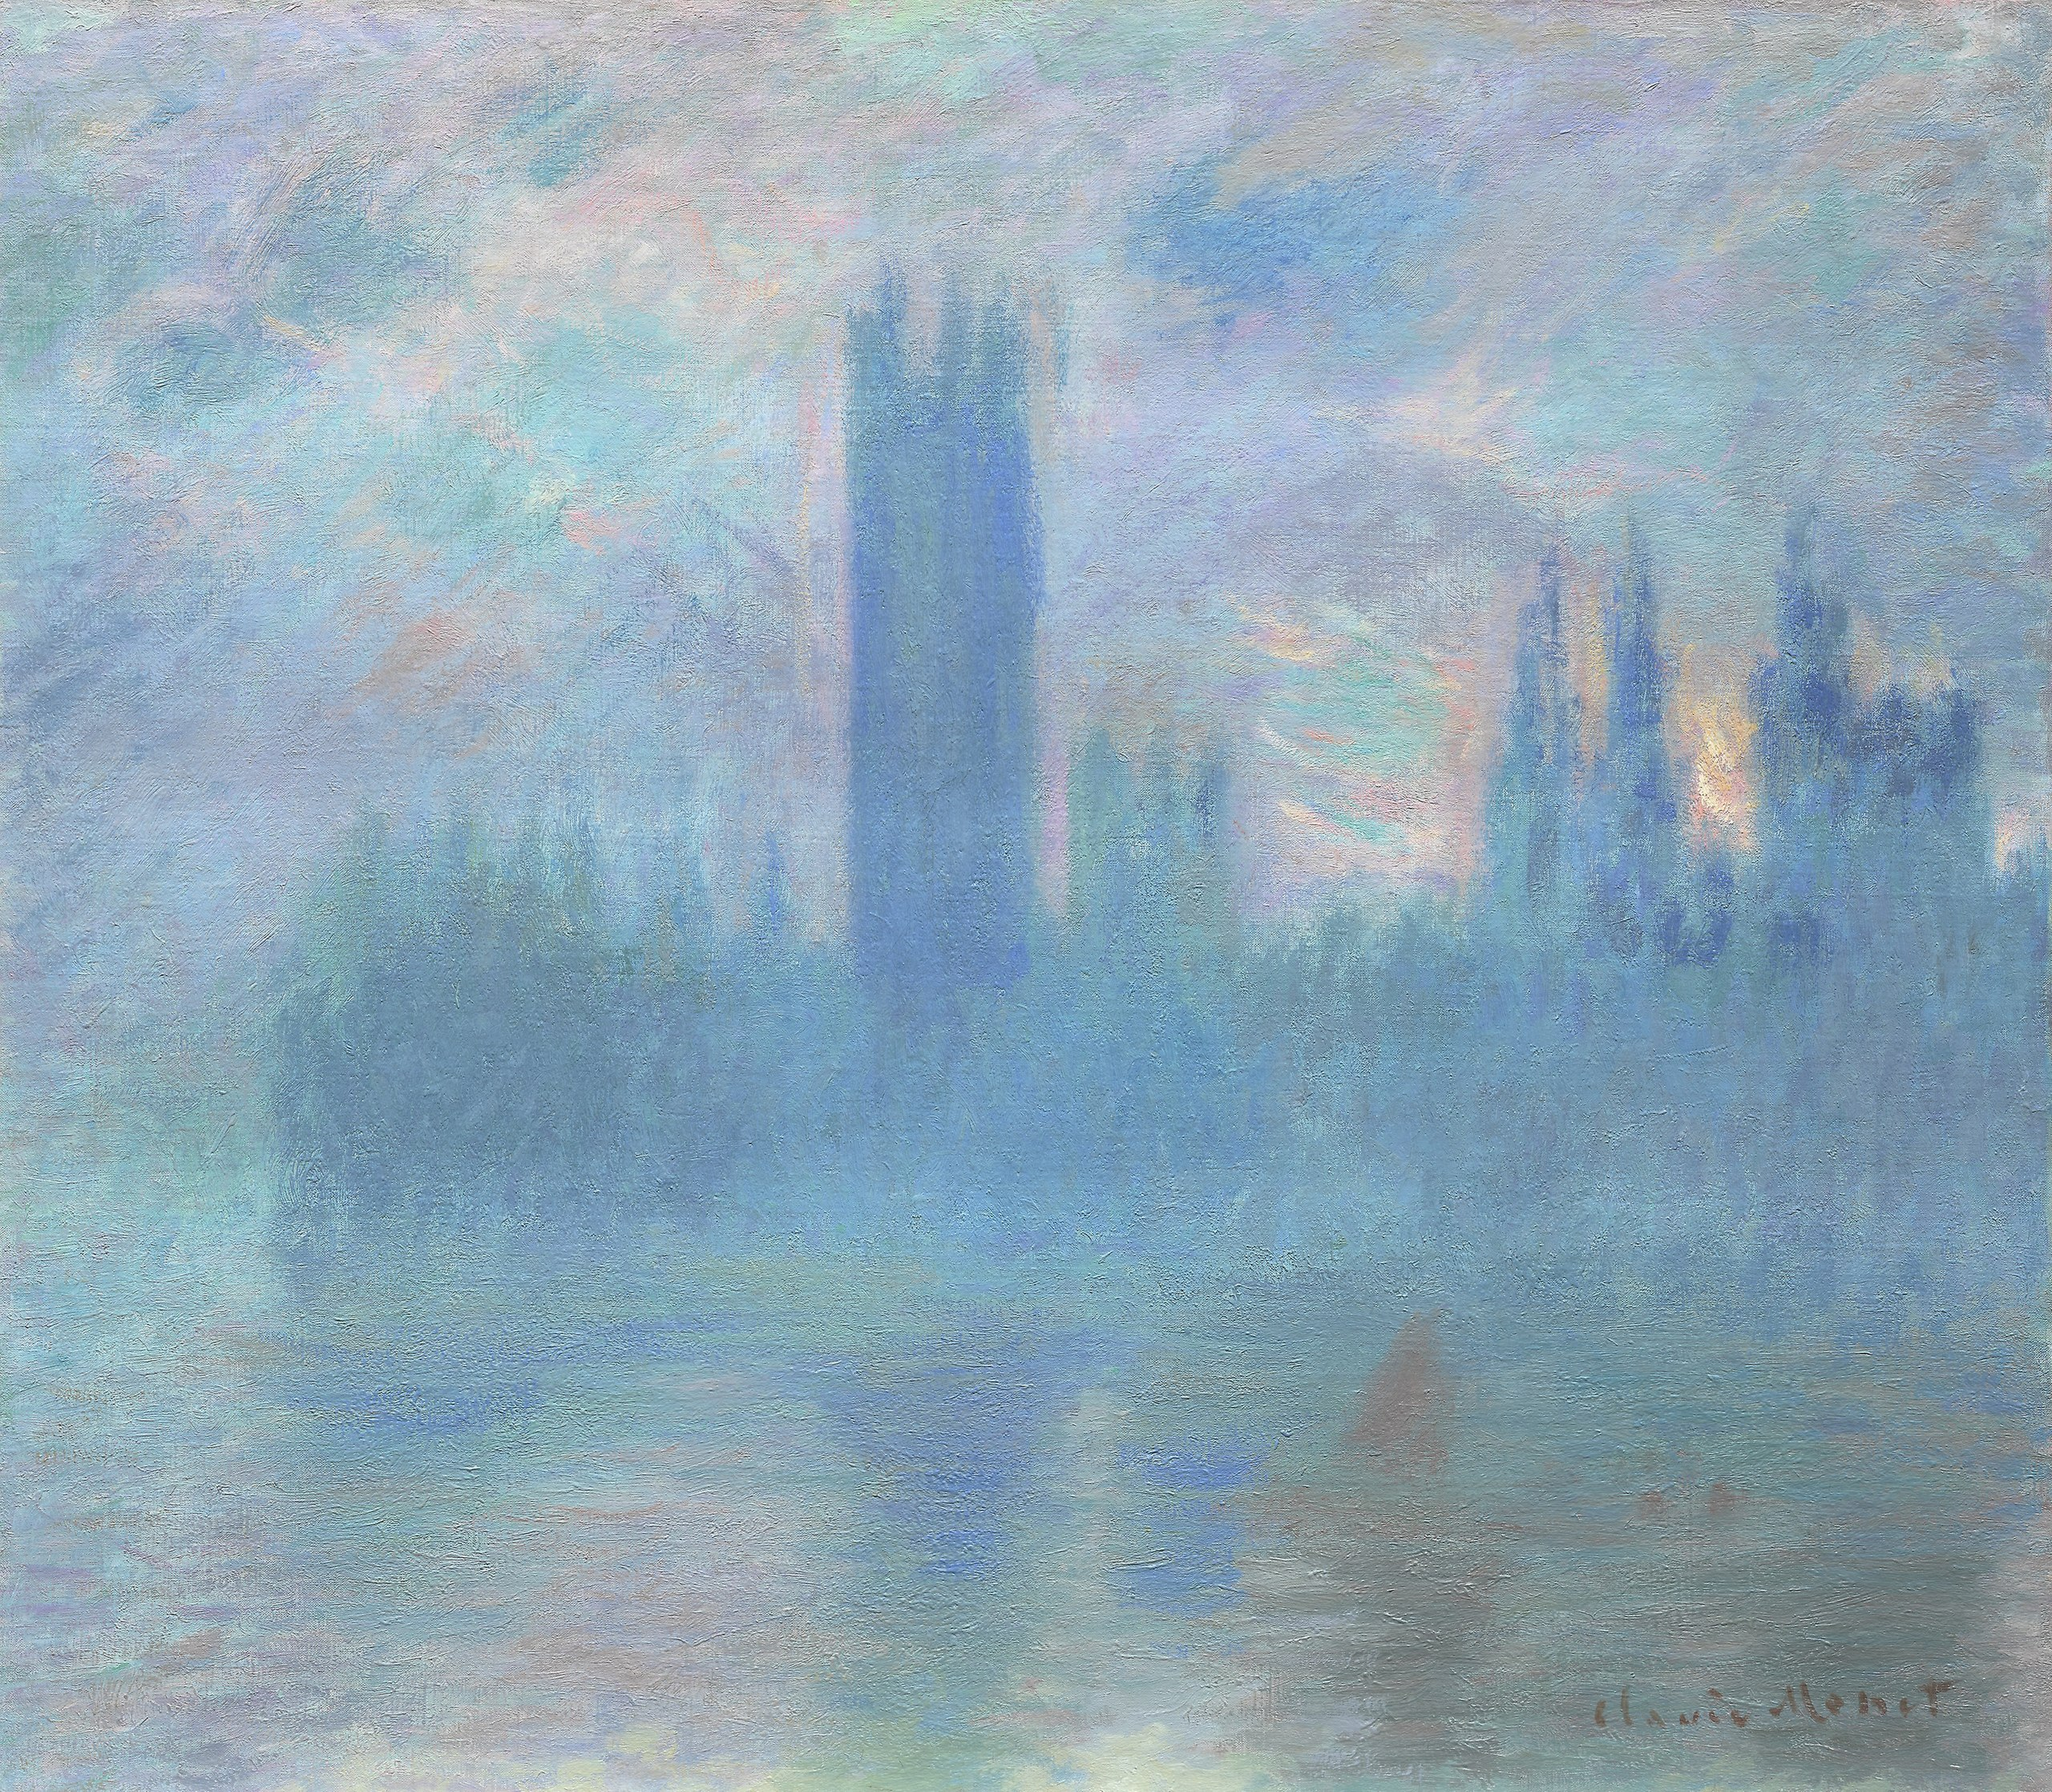 2560px-Claude_Monet__Houses_of_Parliament__London__1900-1903__1933.1164__Art_Institute_of_Chicago.jpg?1550639994